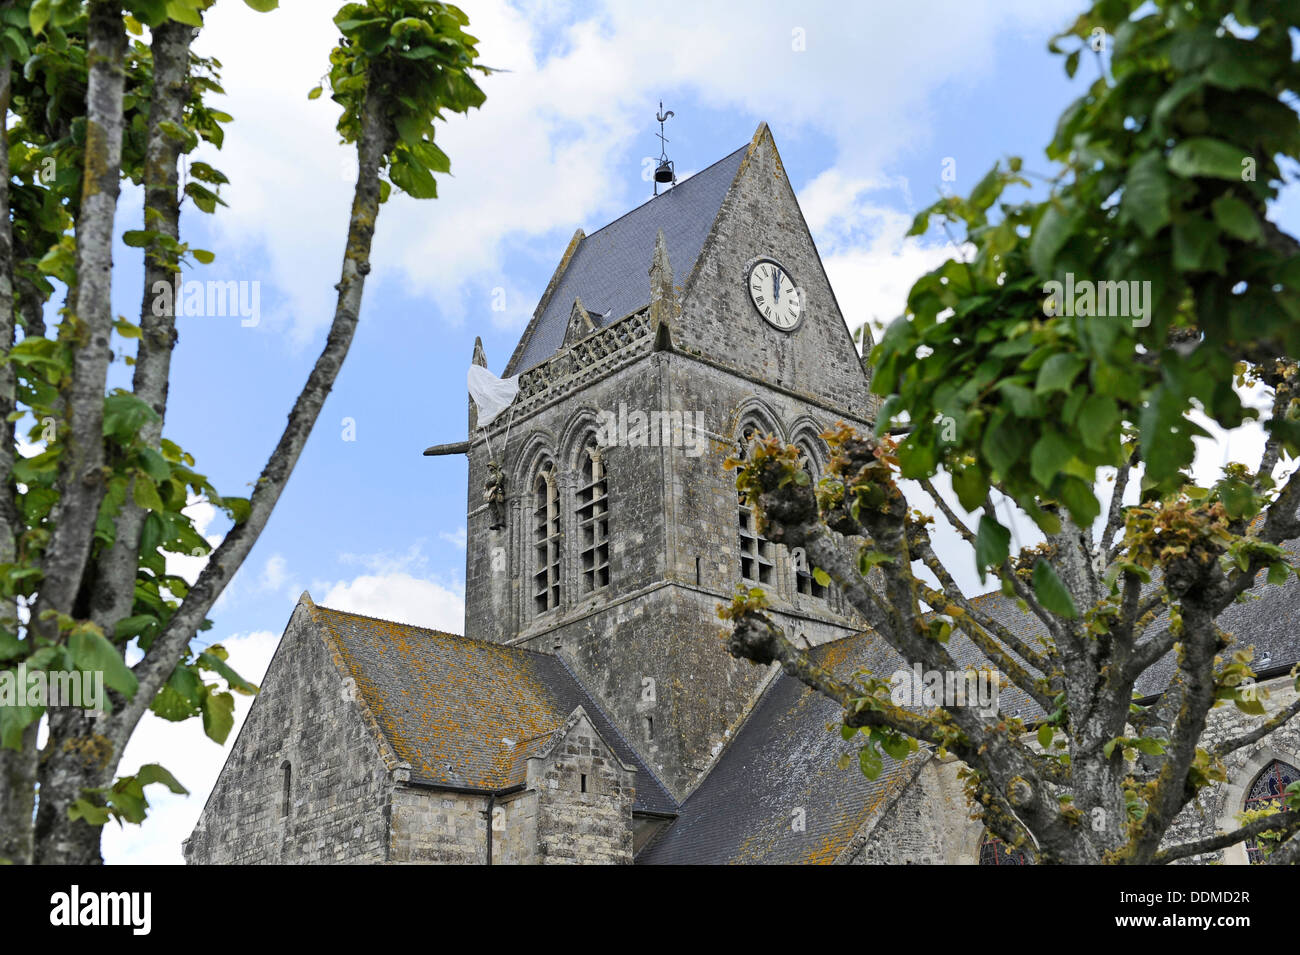 the-church-at-sainte-mre-glise-normandy-